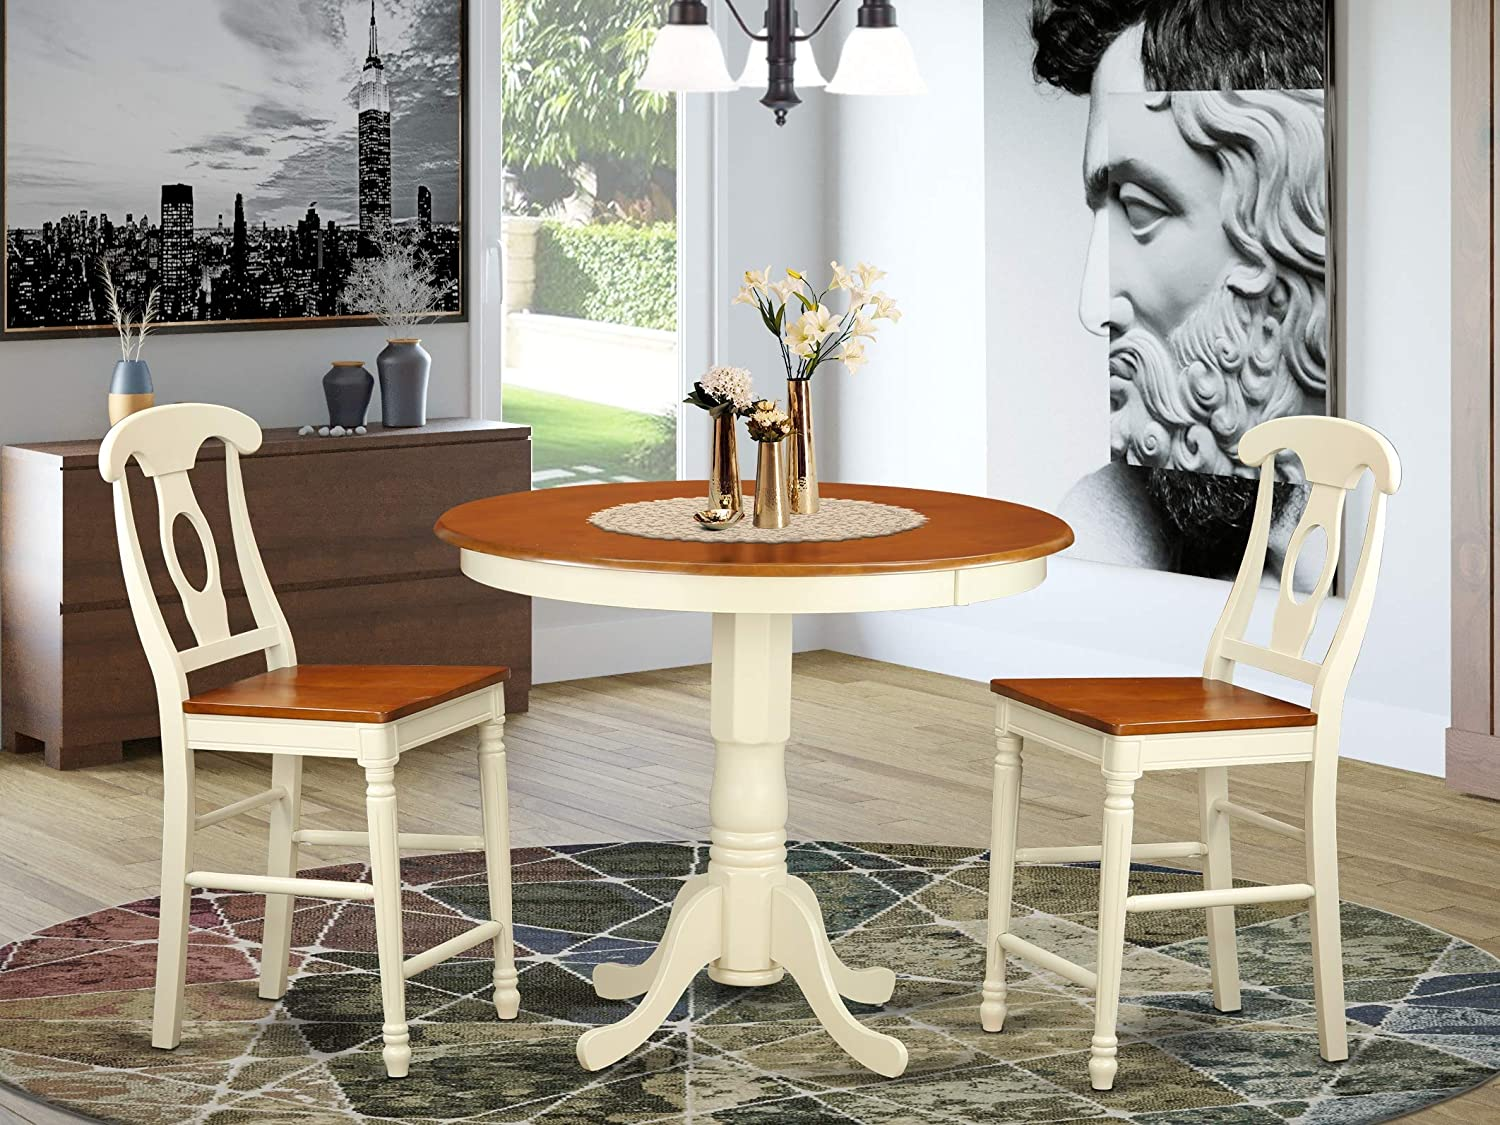 3 Pc counter height Dining room set 2 and top high count Table wholesale - Finally resale start